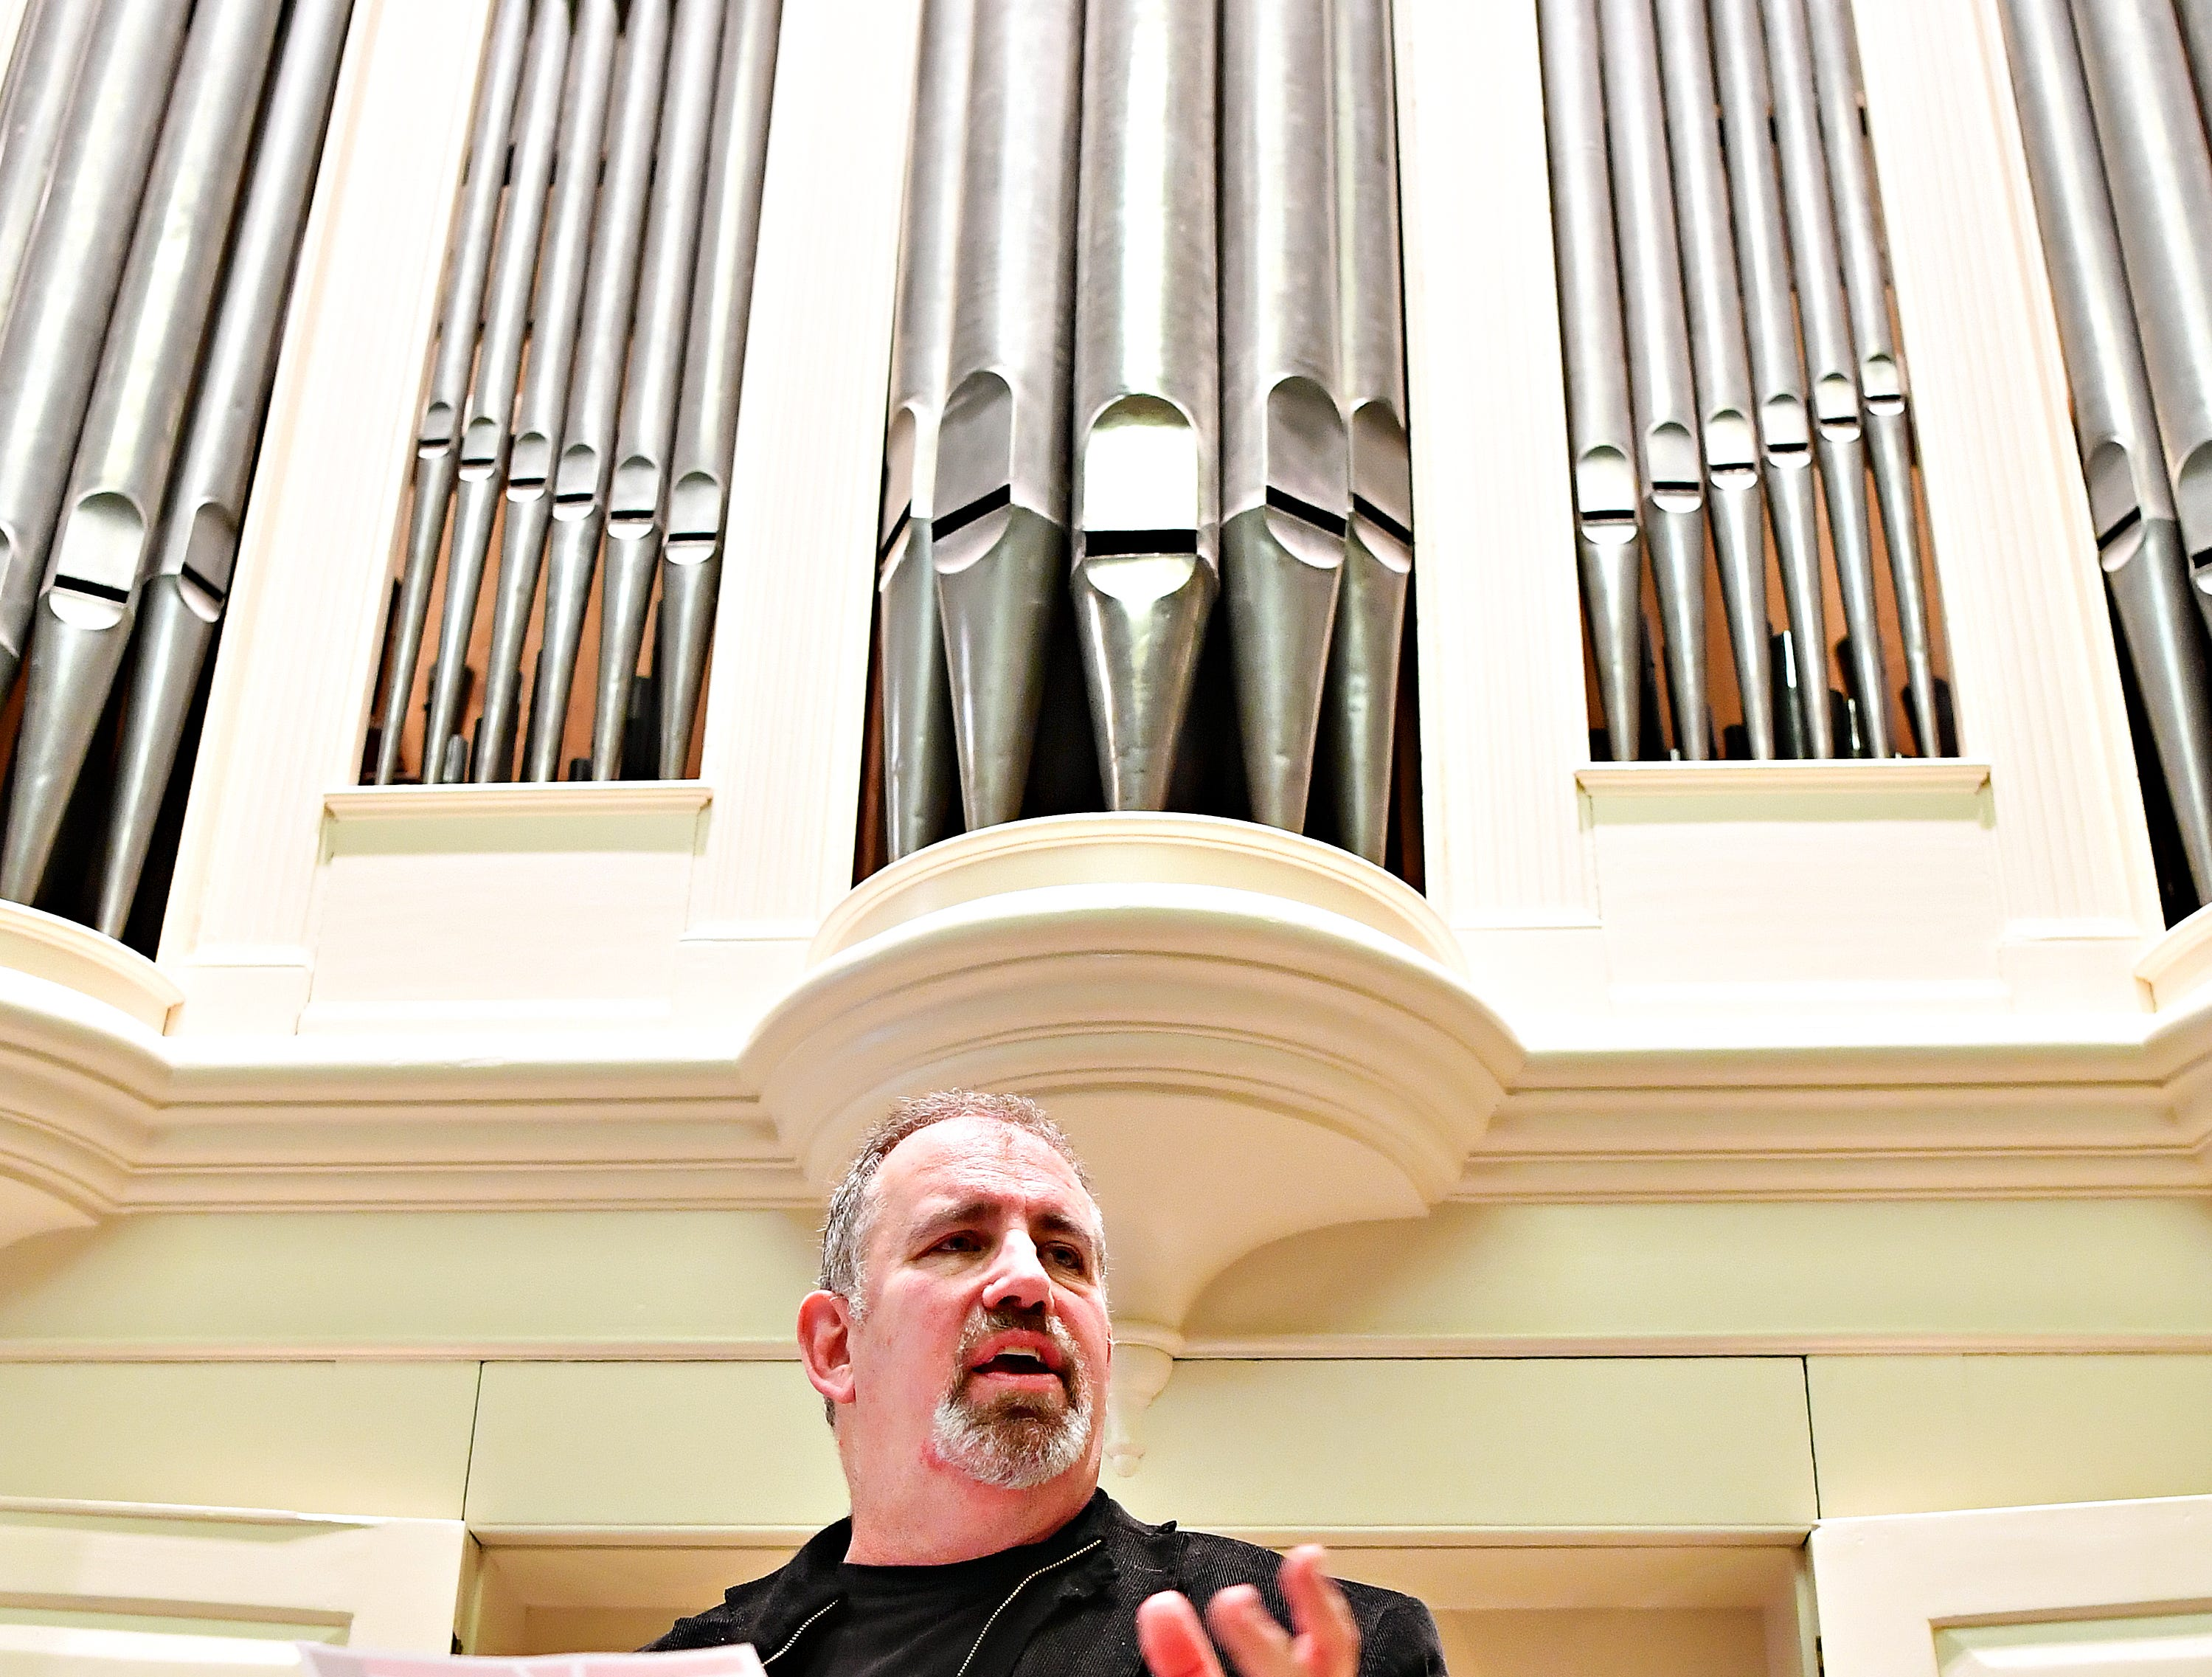 An audience looks on as Victor Fields, of Springfield Township, talks briefly about musical selections during a free performance on Giving Tuesday at York County History Center in York City, Tuesday, Nov. 27, 2018. The history center is hoping to raise $250,000 for the restoration of the 1804 Tannenberg organ. Dawn J. Sagert photo